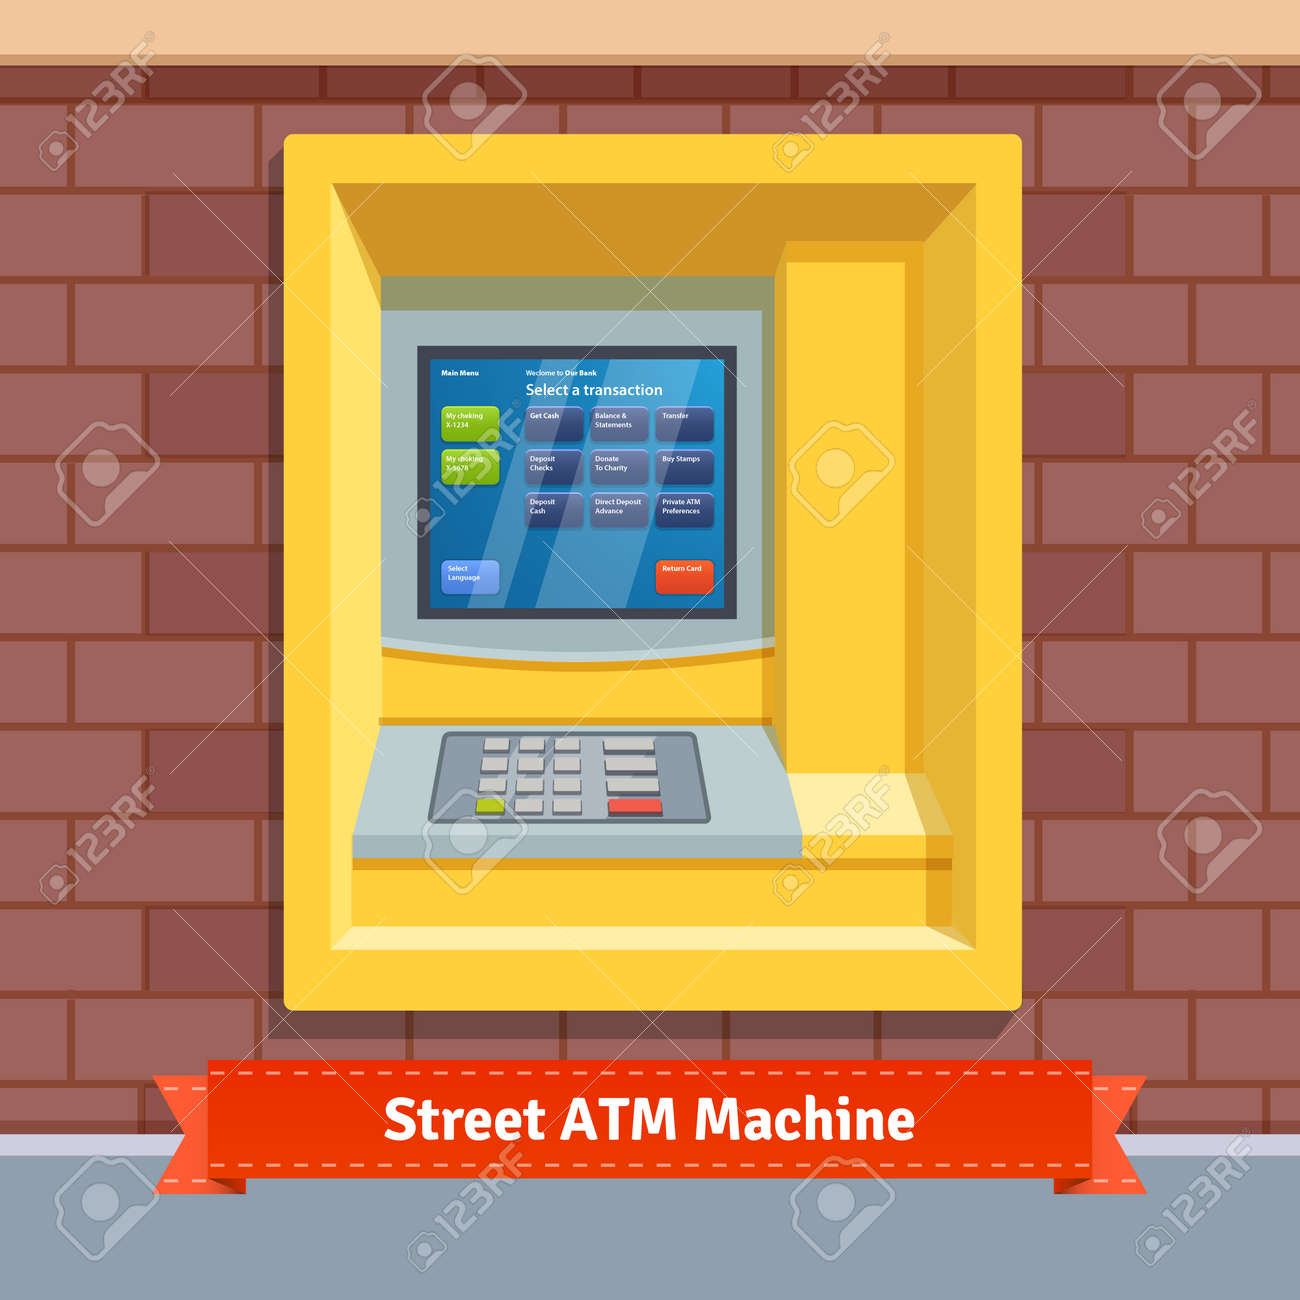 Brick Wall Mounted Outdoor ATM Machine  Flat Style Vector